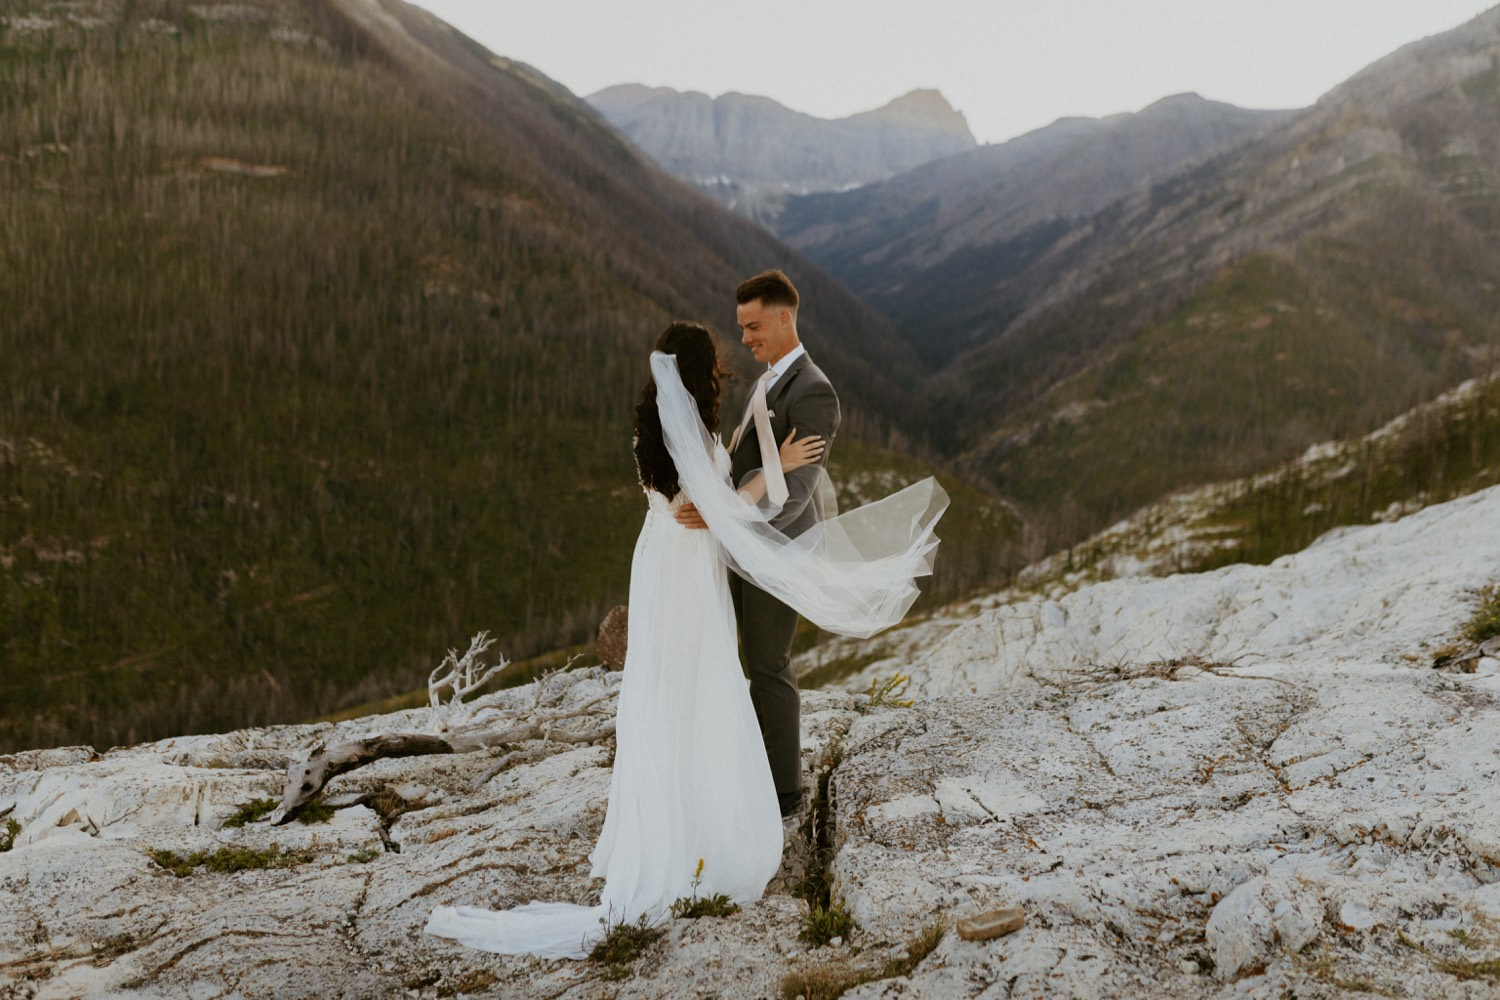 Waterton Wedding Adventurous Mountain Elopement style in the beautiful Canadian Rocky Mountains first look between bride and groom on the mountain top